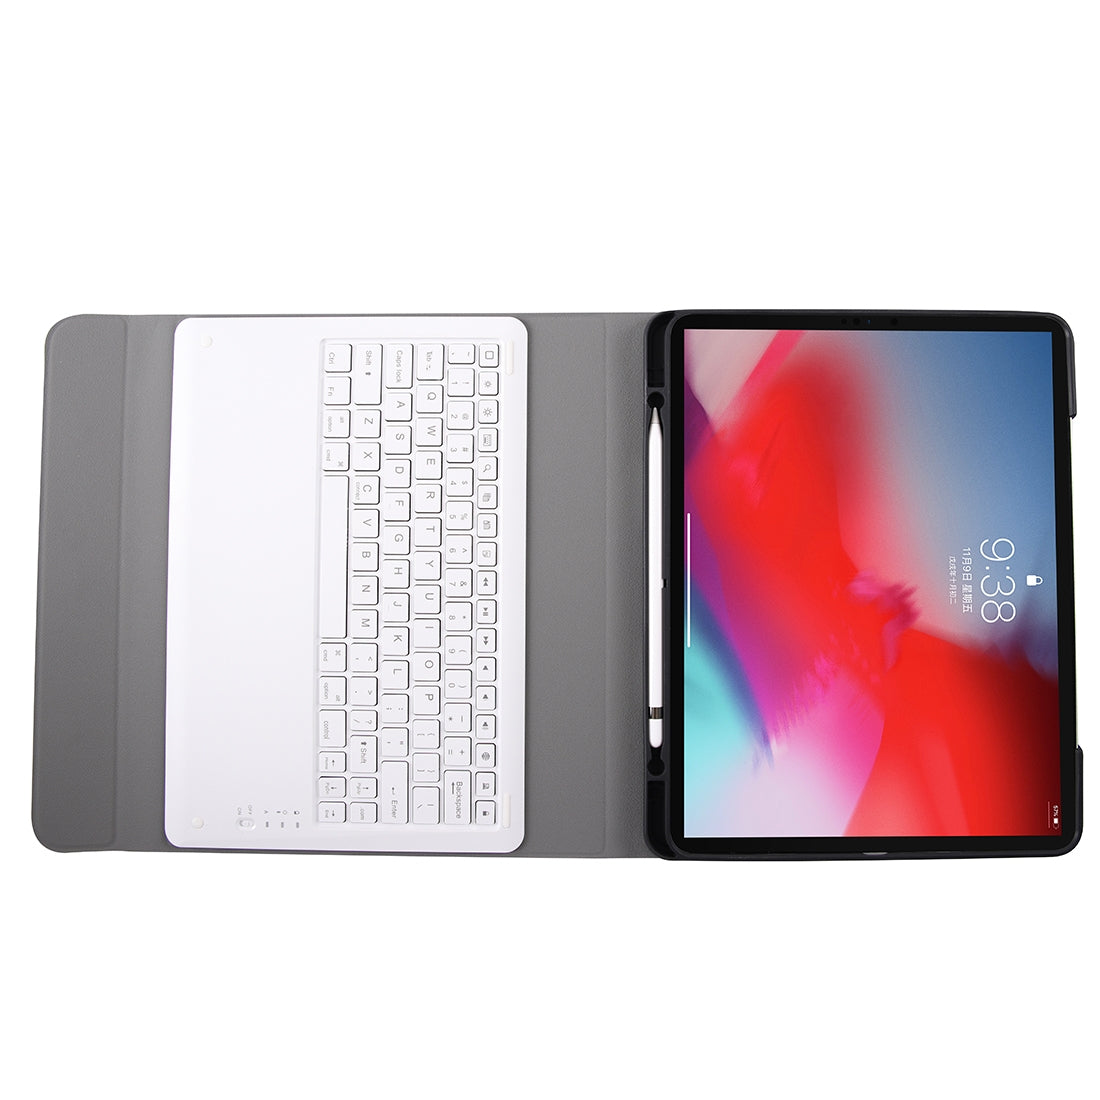 A12B Bluetooth 3.0 Ultra-thin Detachable Bluetooth Keyboard Leather Case for iPad Pro 12.9 inch ?2018?, with Pen Slot & Holder (Rose Gold)